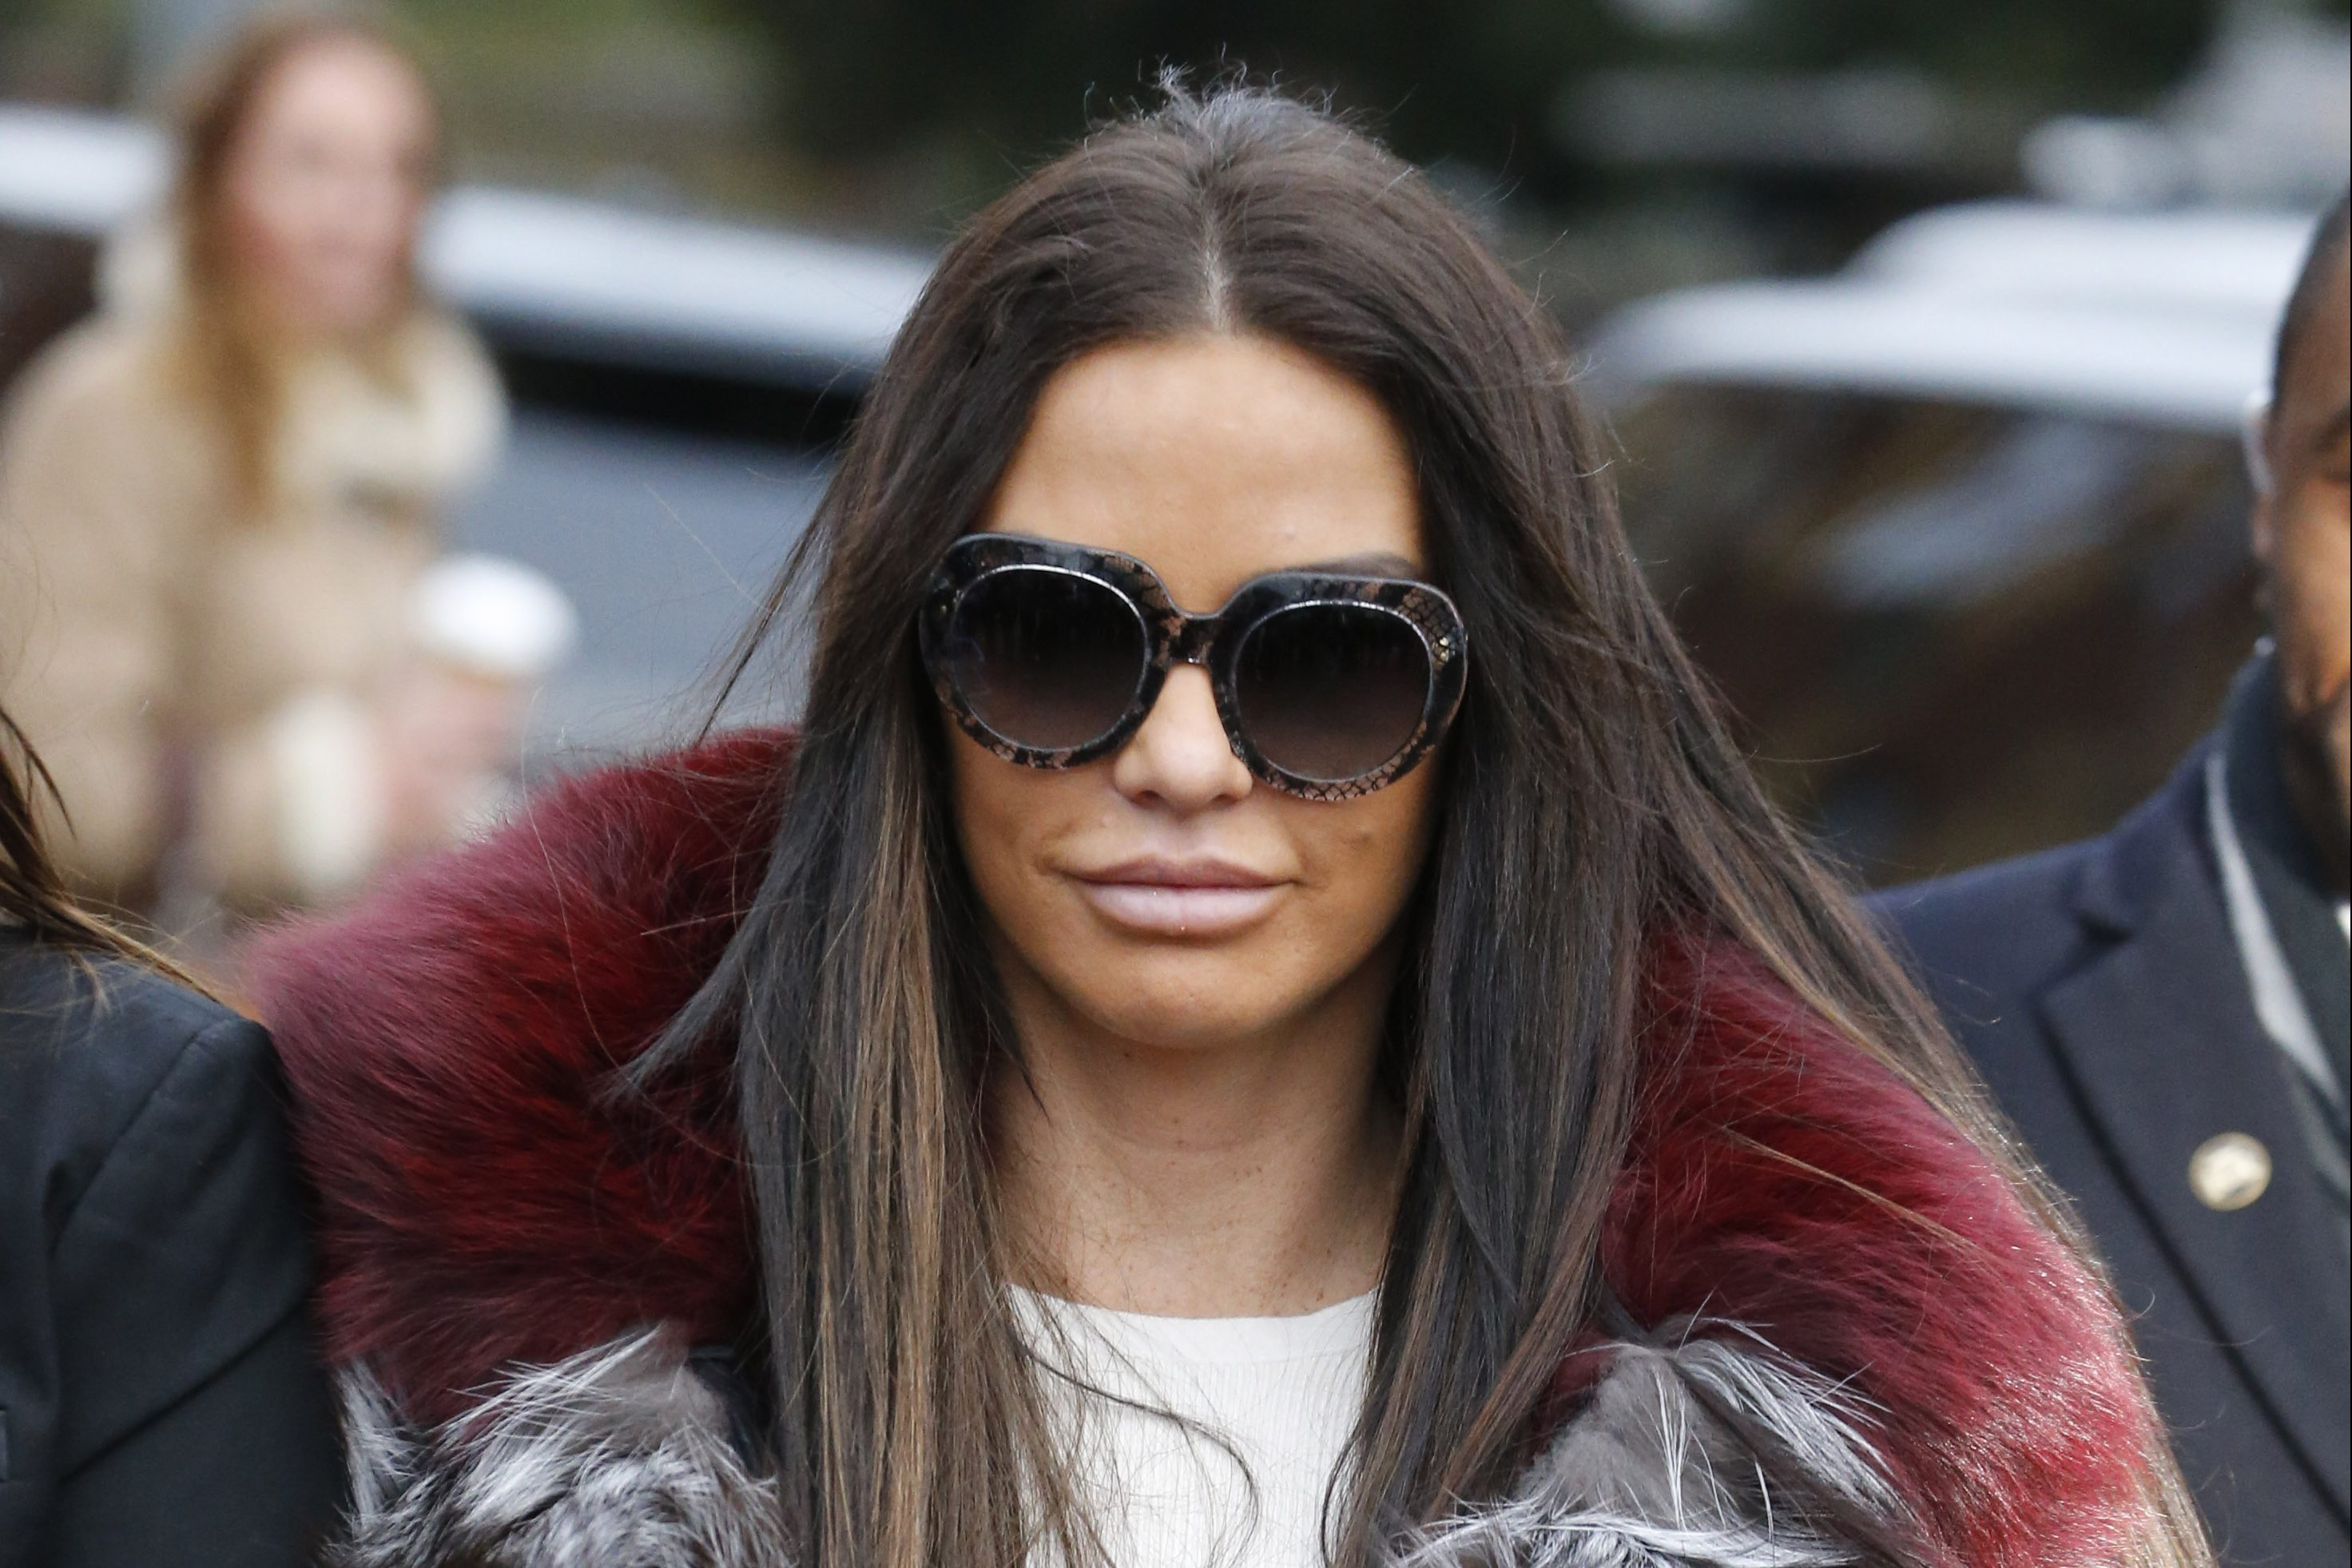 Katie Price 'terrified ex will leak intimate photos' following split